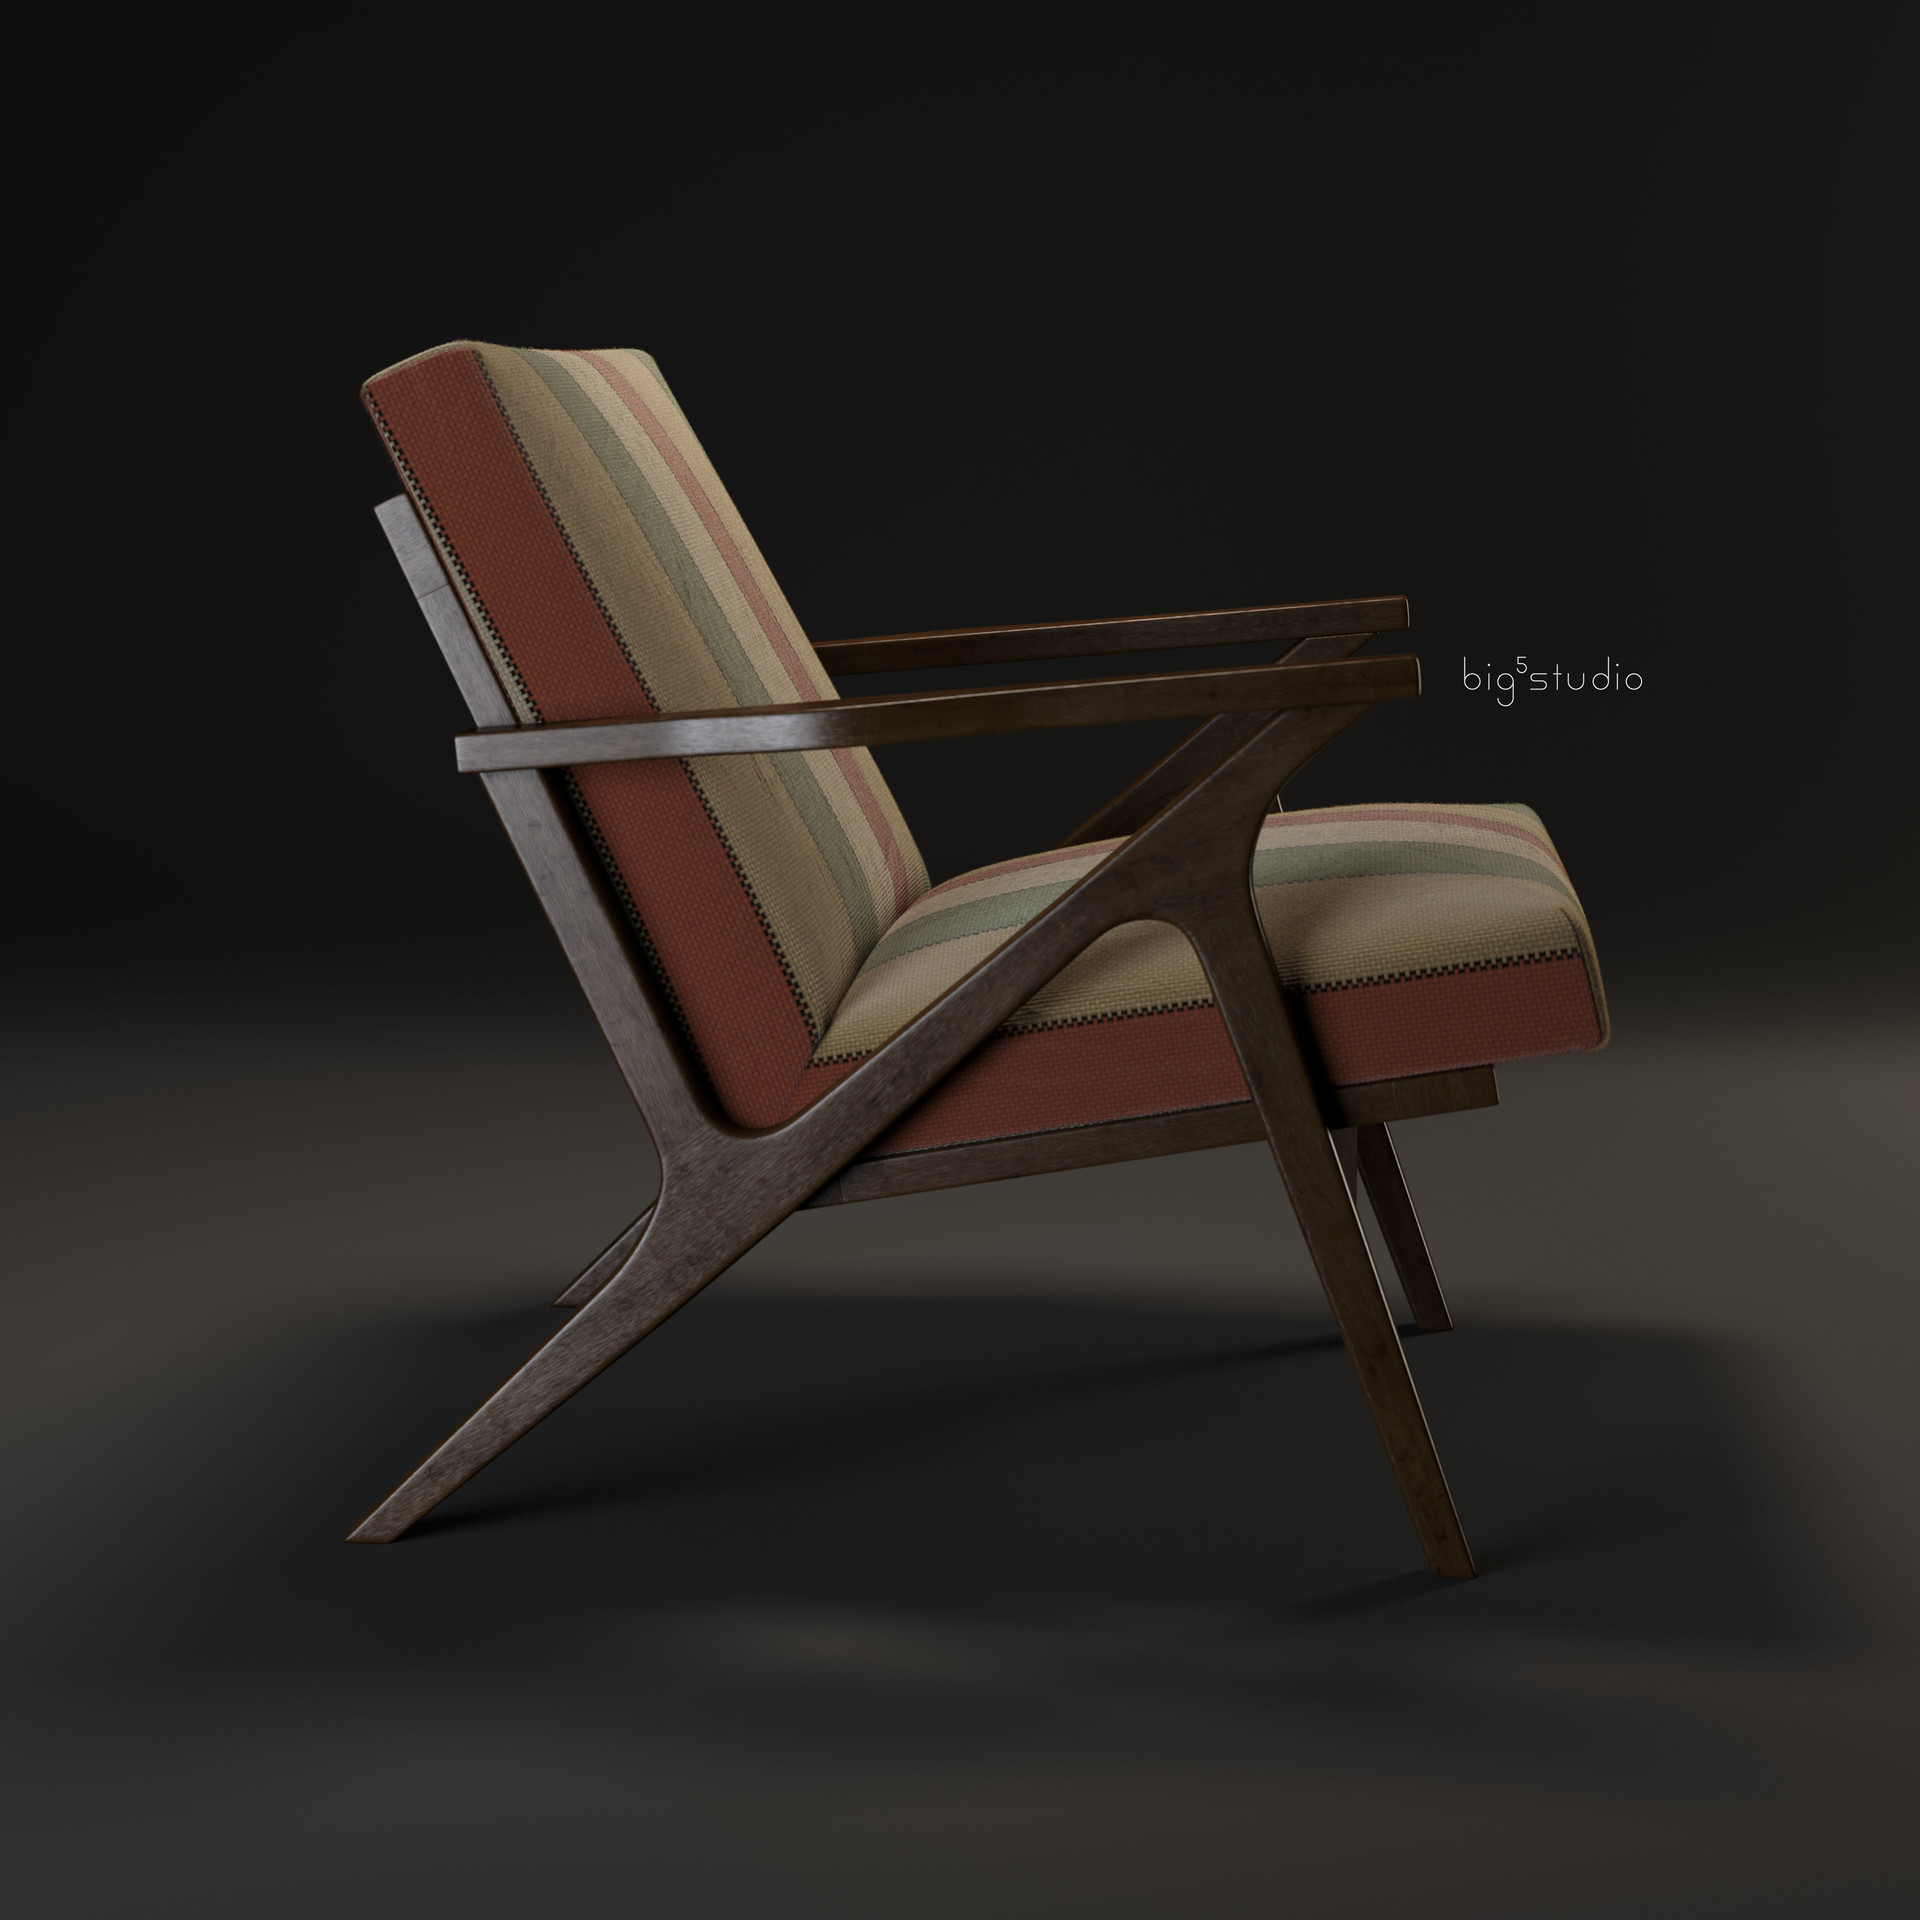 Neal biggs product chair cavettwoodframe0001 beauty